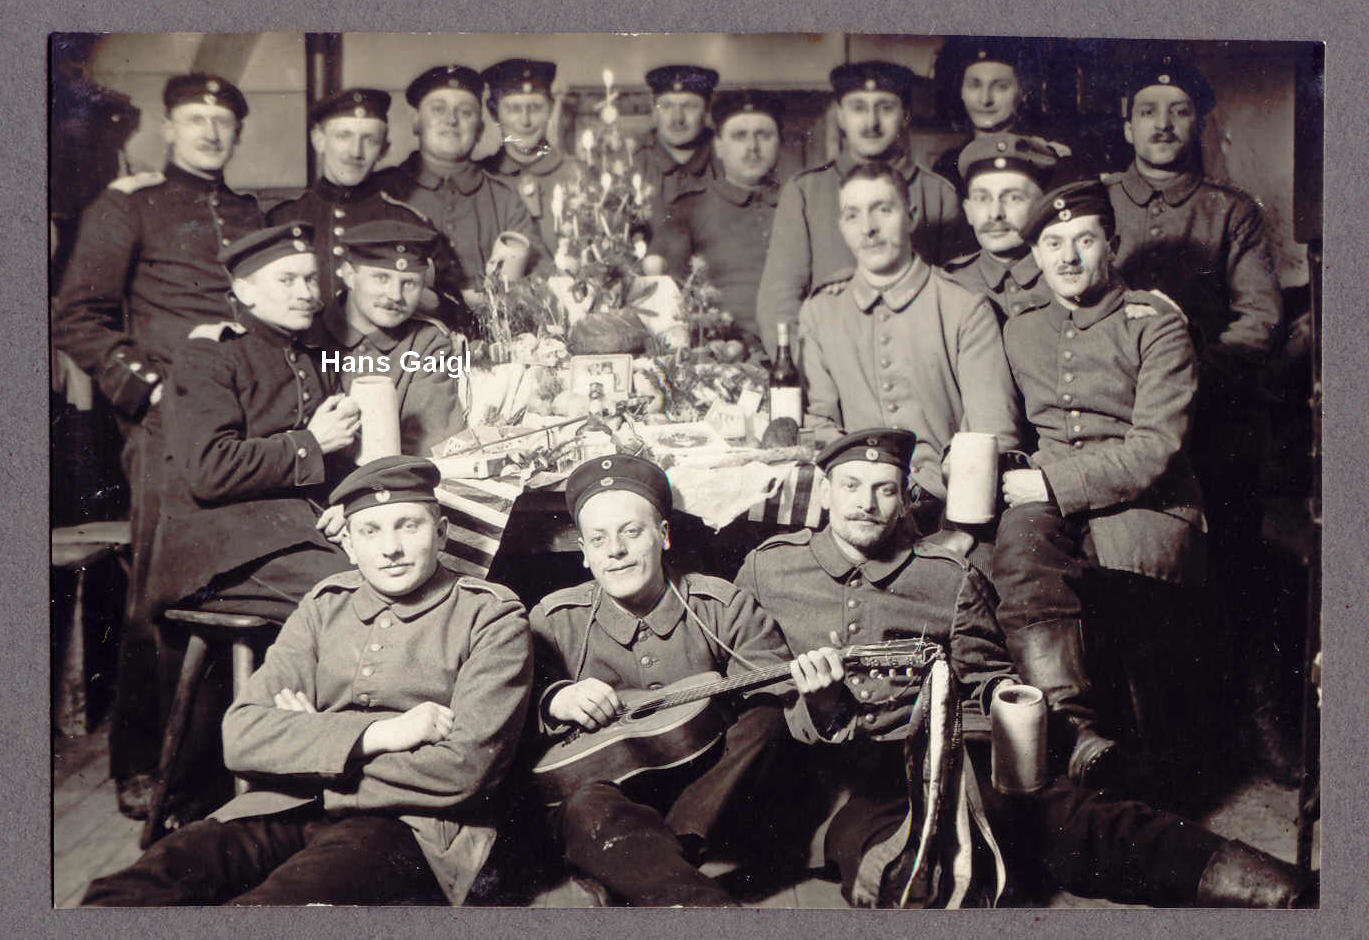 Hans Gaigl amidst his comrades at Christmas , undated, Europeana 1914-1918 / Günter Gaigl, CC BY-SA